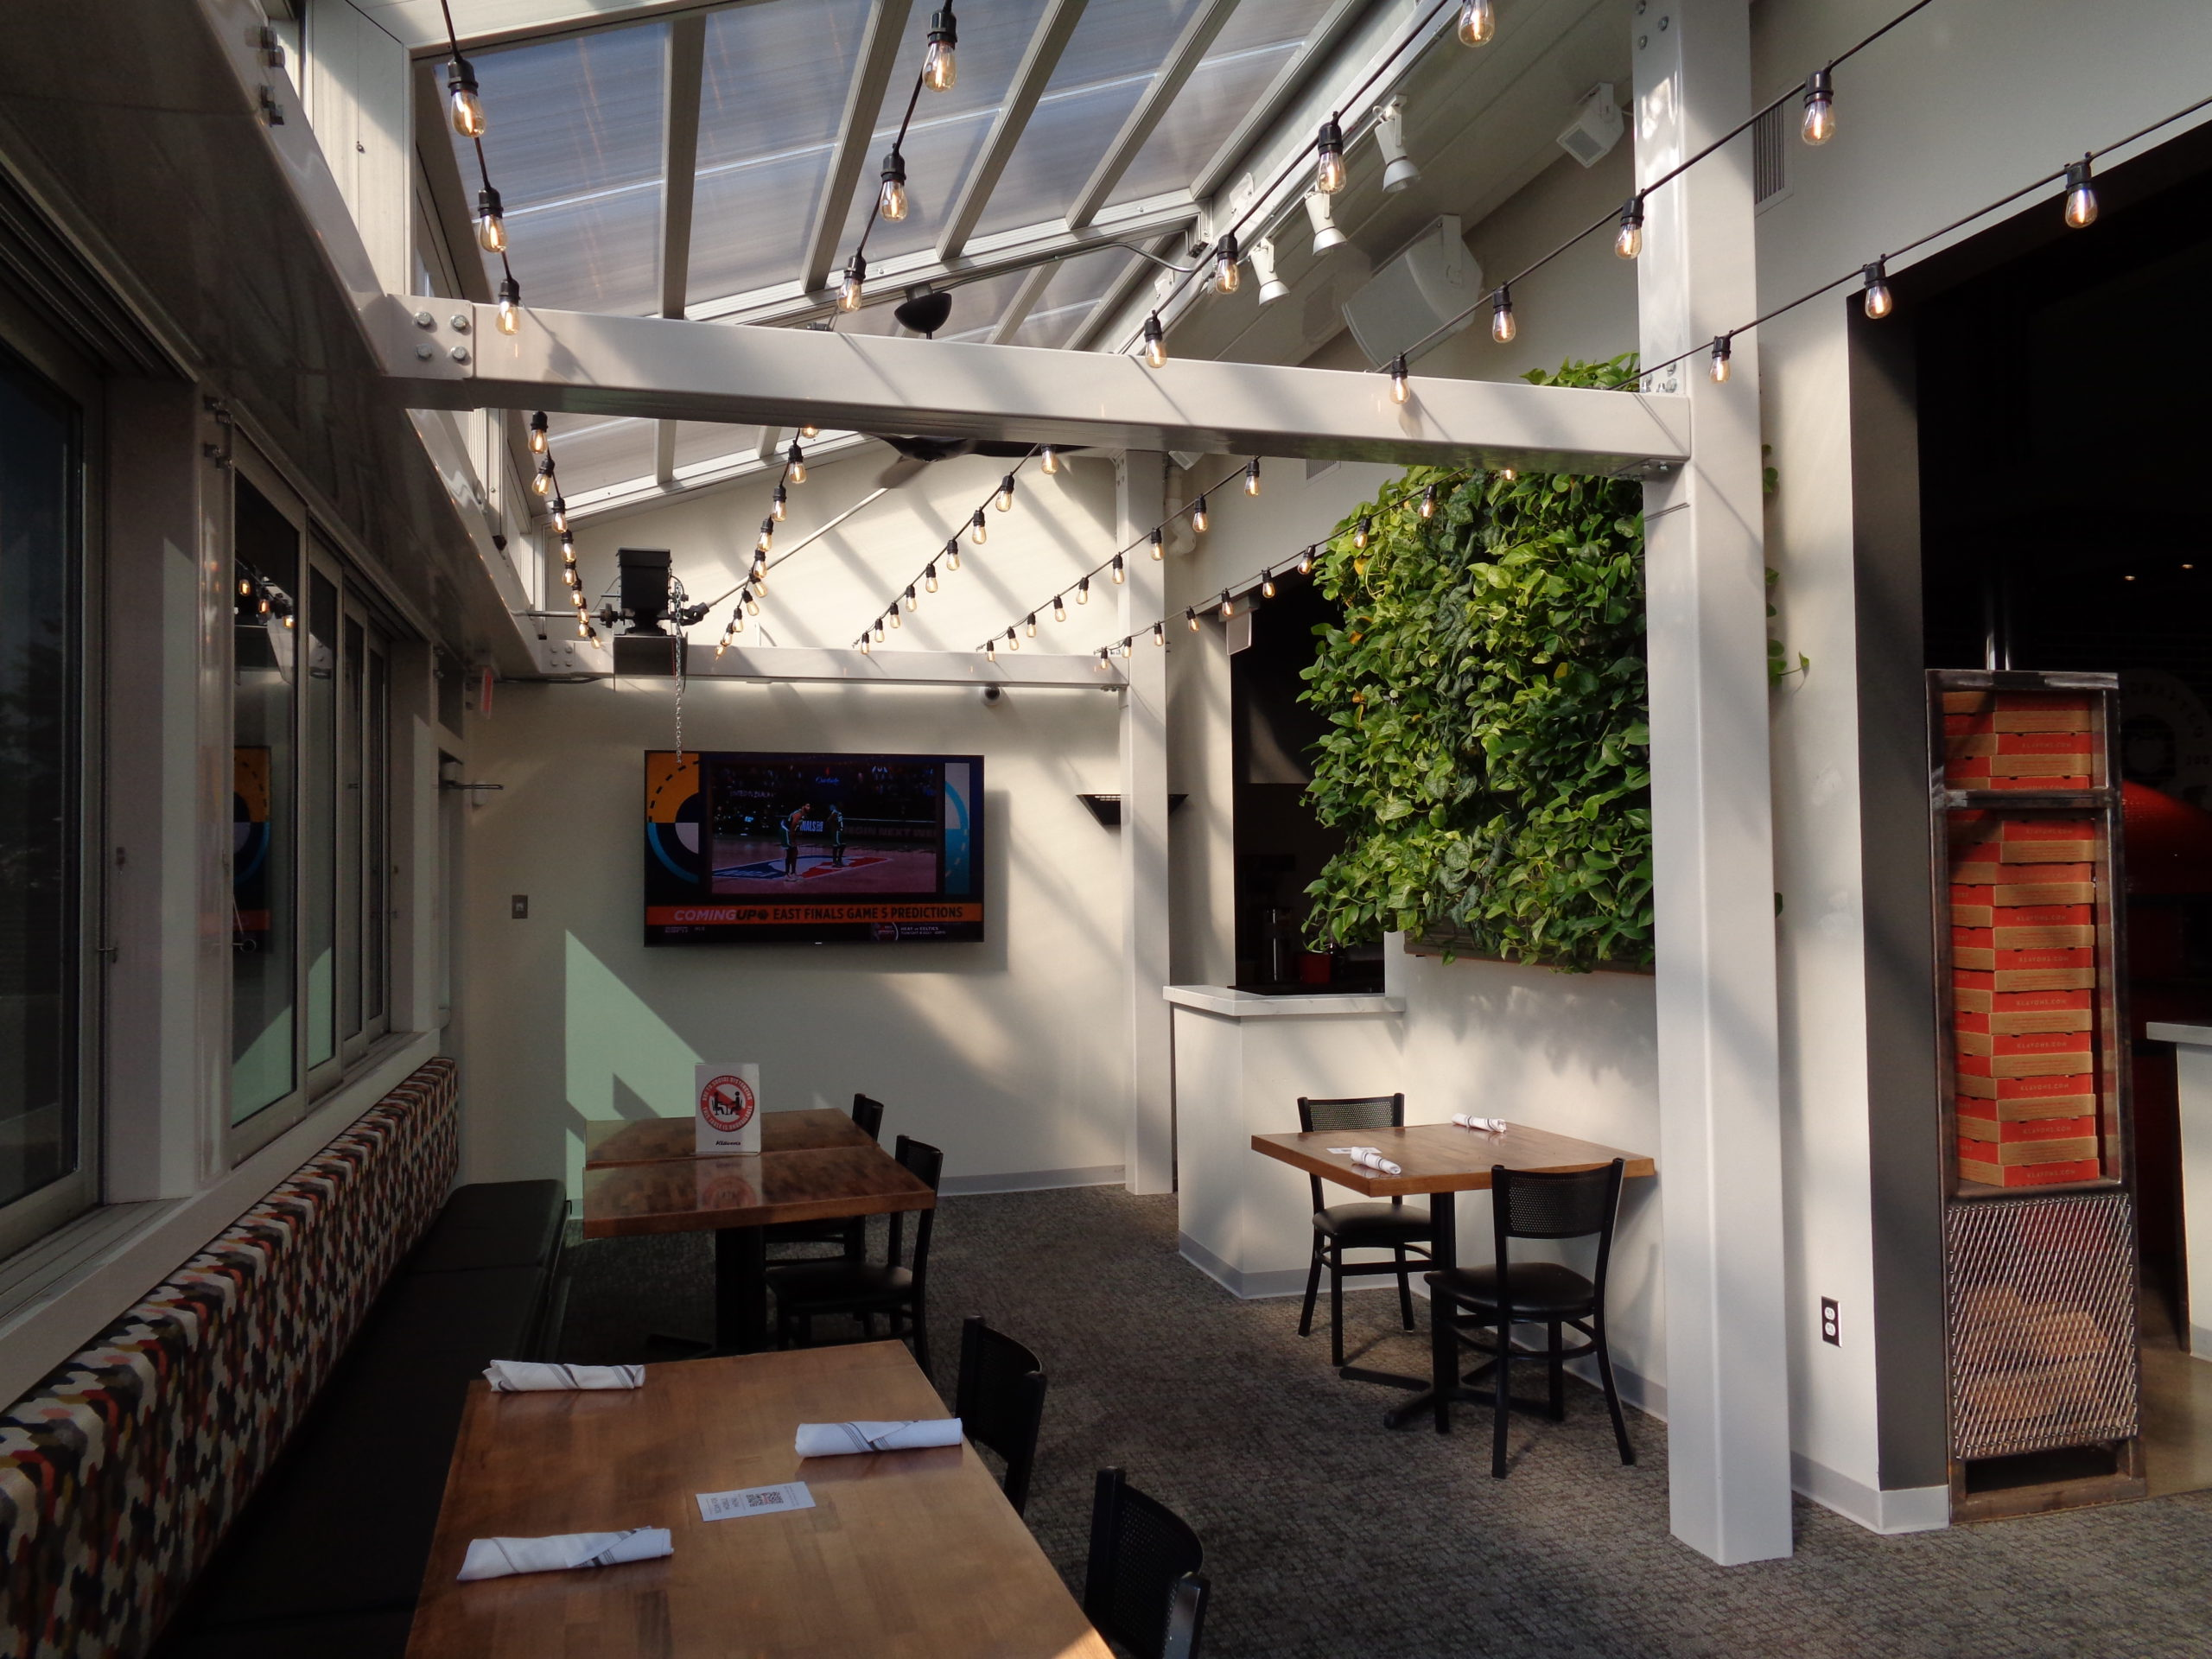 Tropical plants in Klavon Pizzeria's living wall